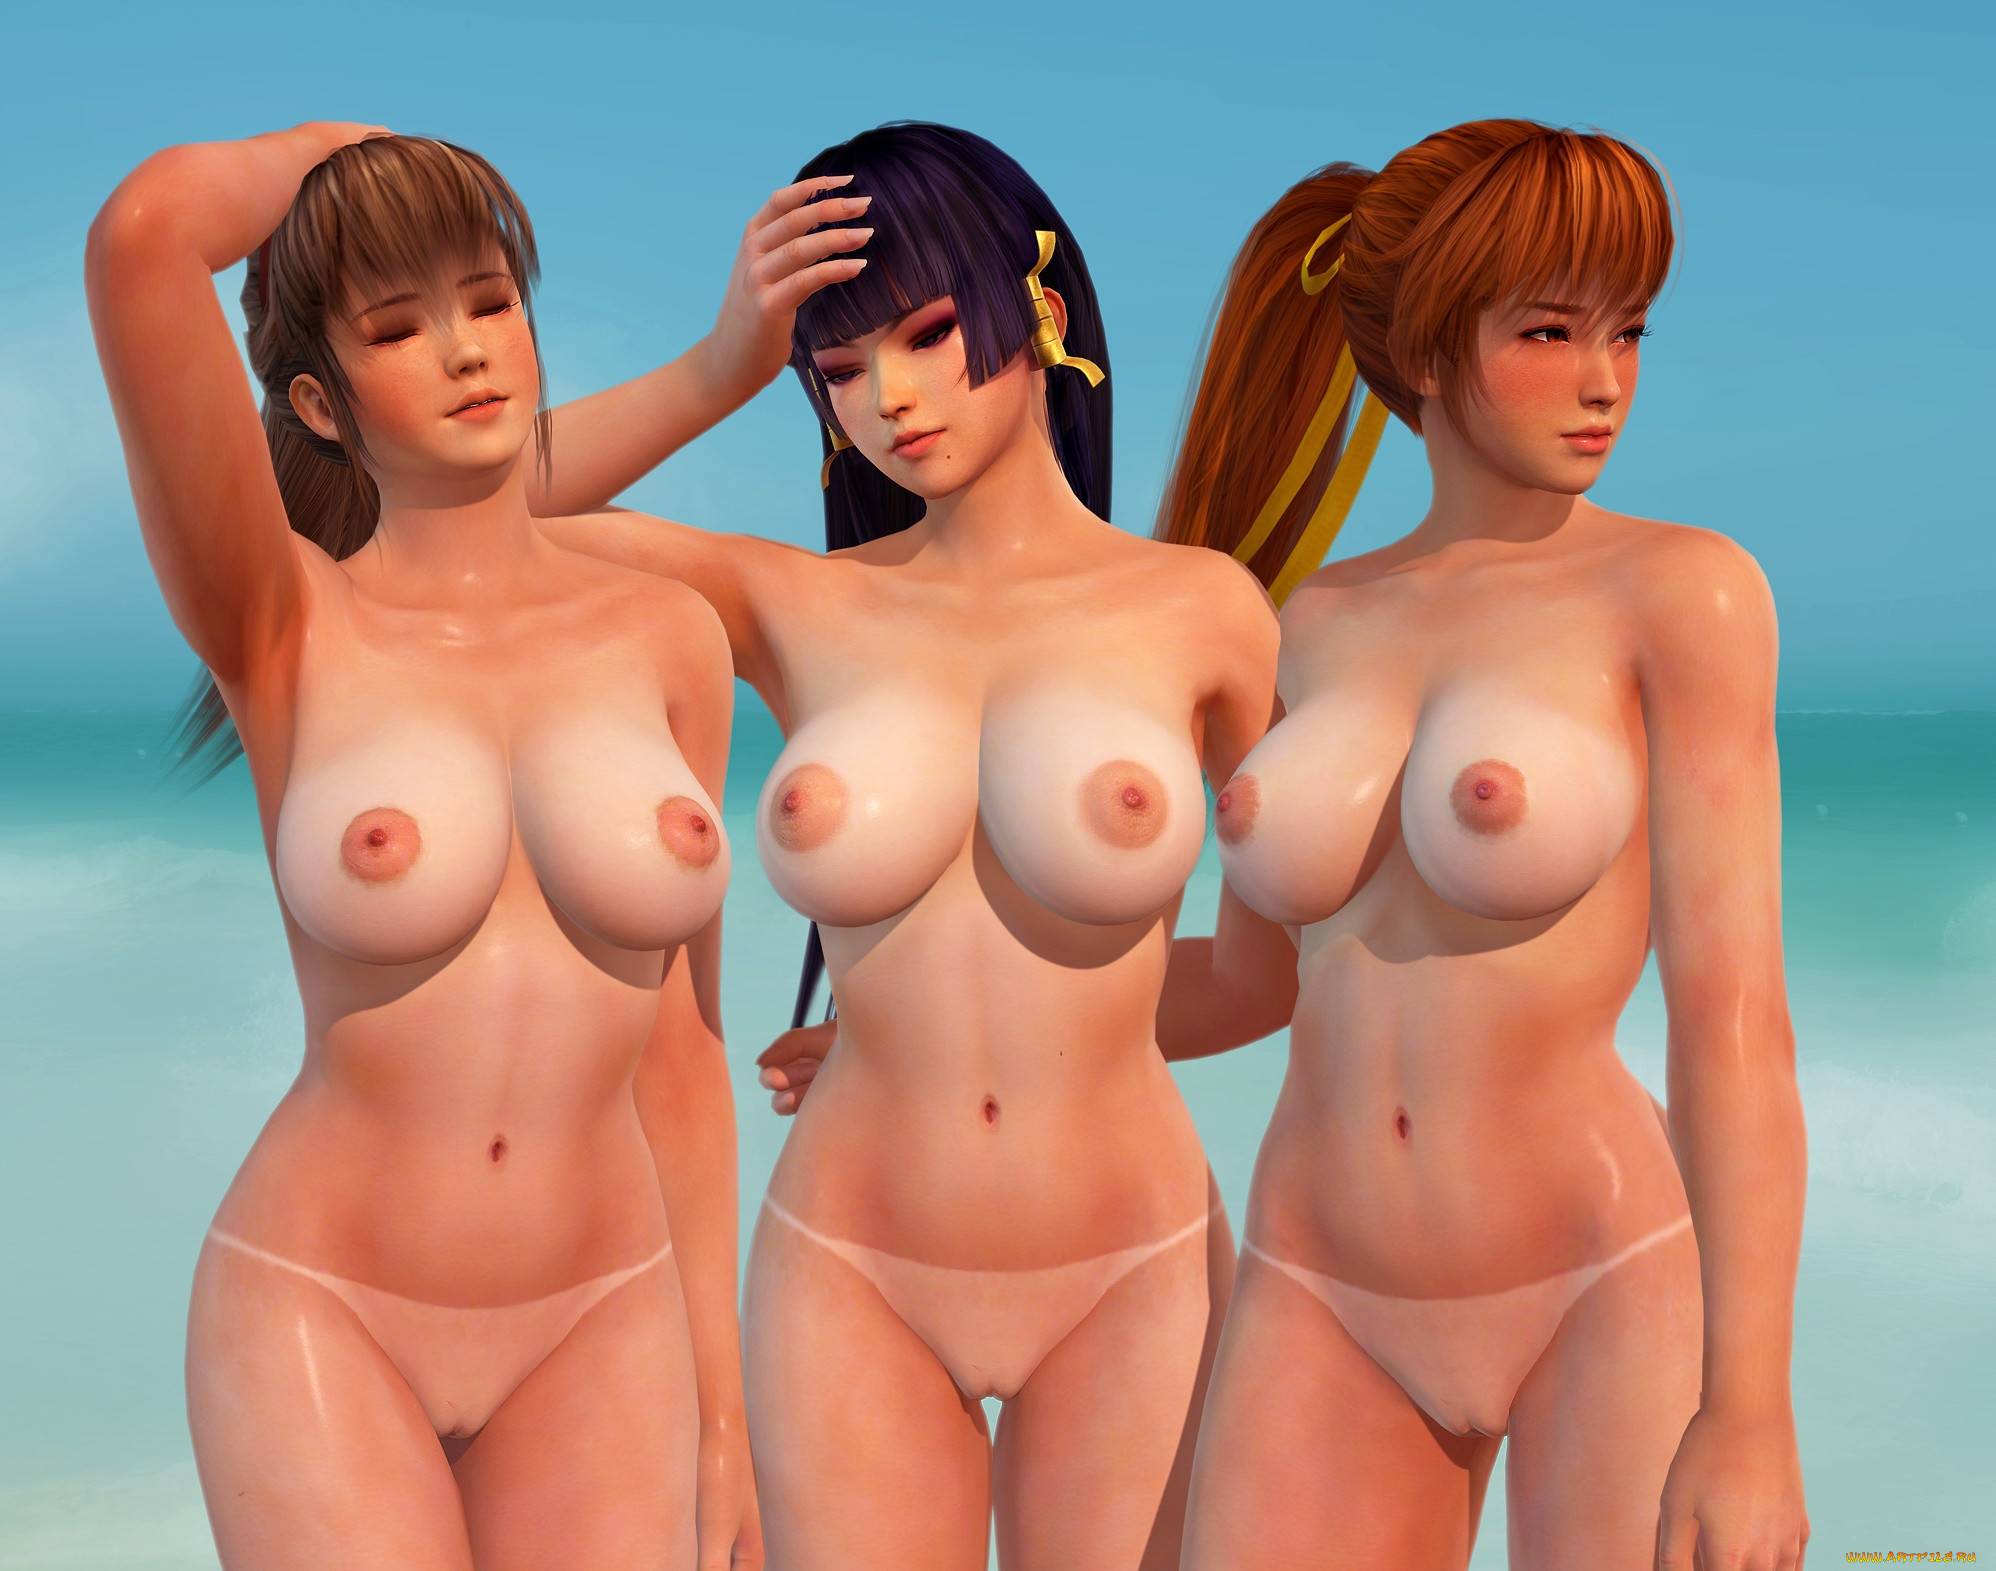 Naked girls try to distract games